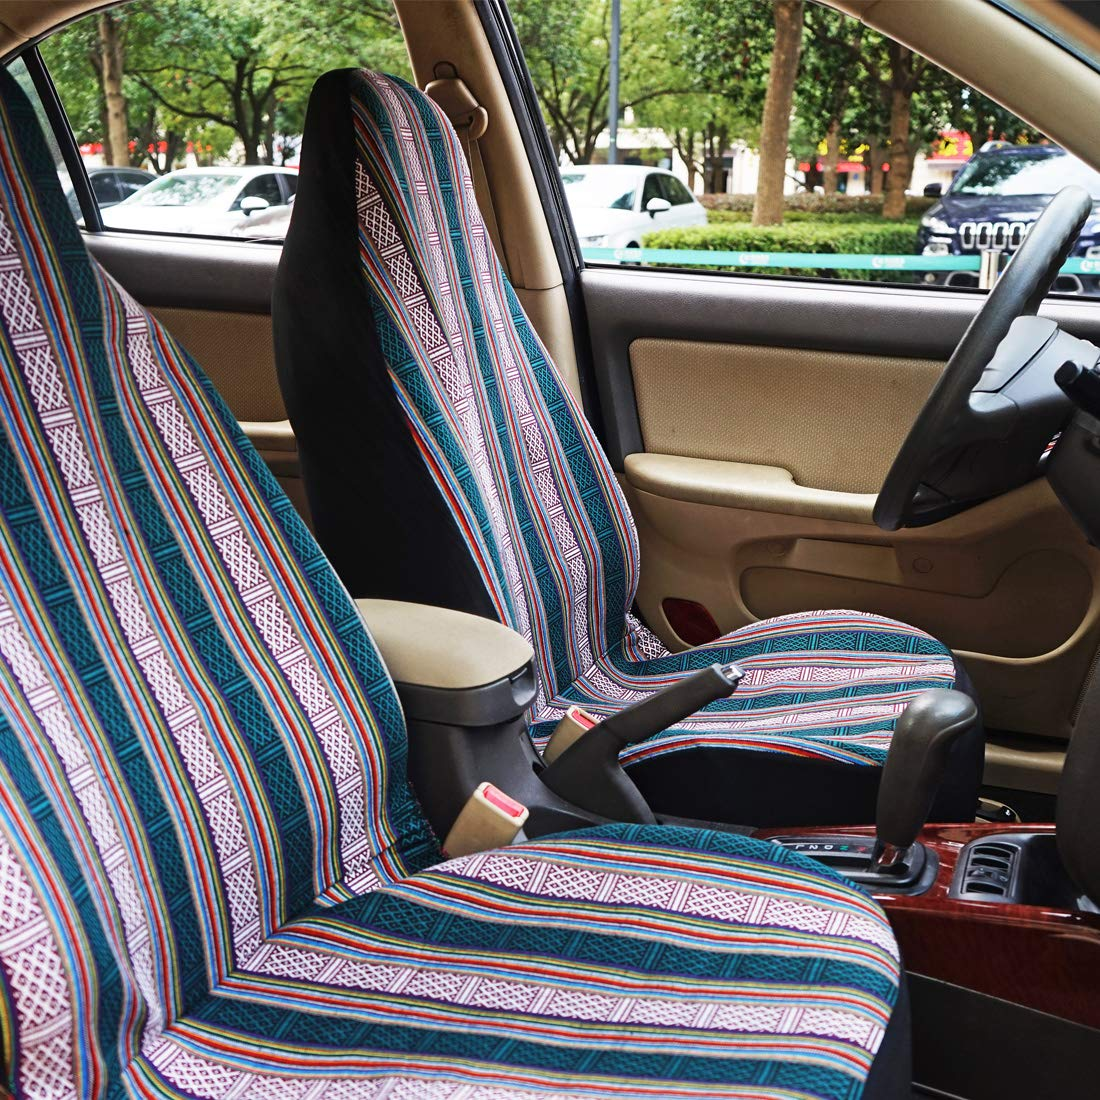 INFANZIA Baja Front Seat Covers Saddle Blanket Auto Seat Cover with Seat Belt Covers Fit Car Truck Van SUV Black /& White 4Pcs